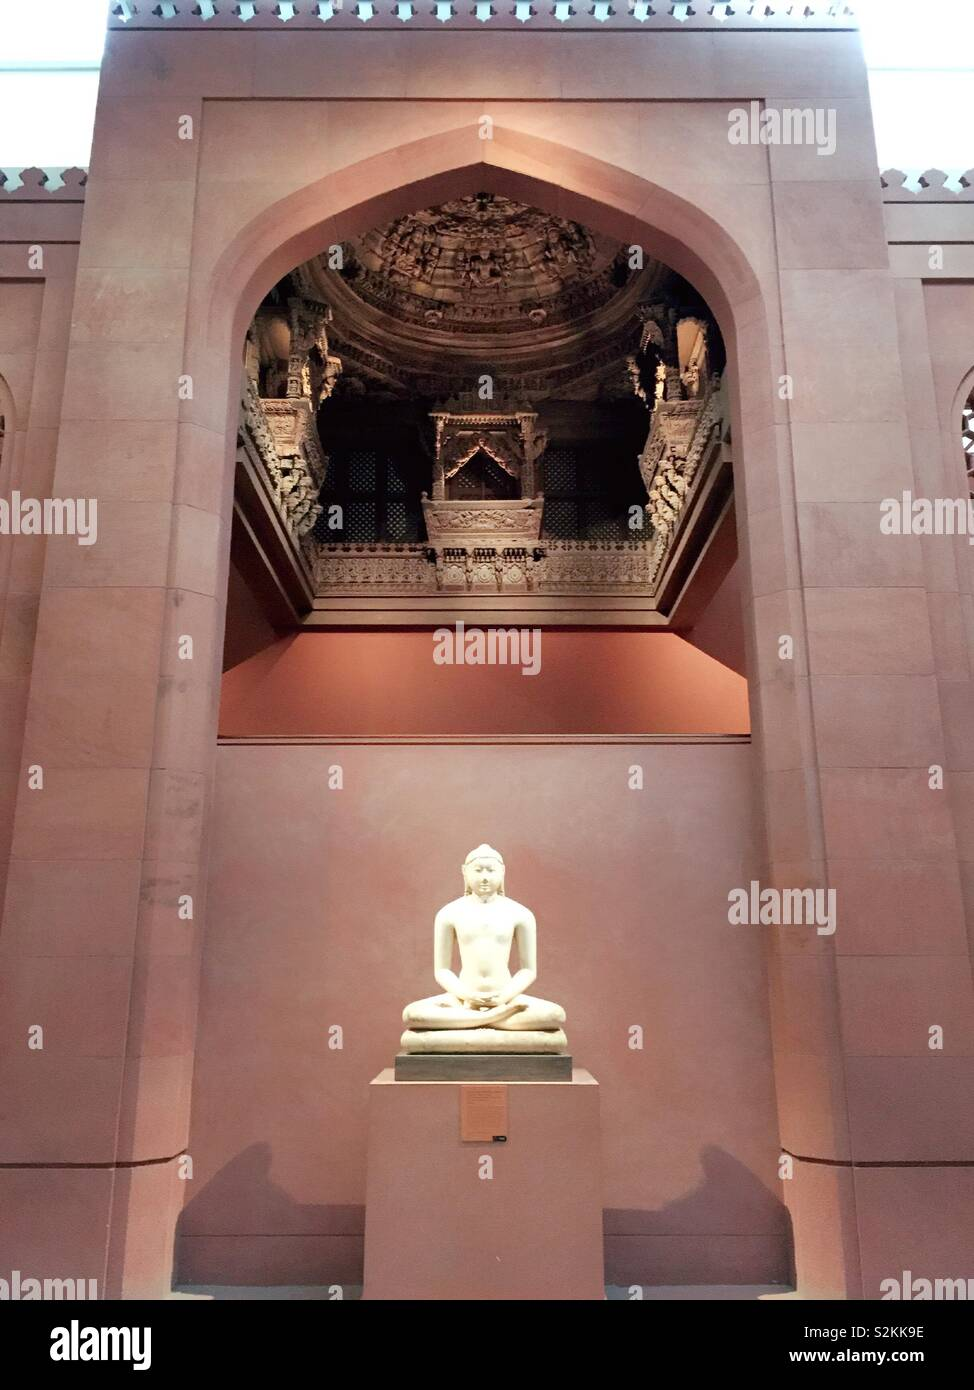 Buddha statue in the Asian art wing of the Metropolitan Museum of Art, NYC, USA - Stock Image